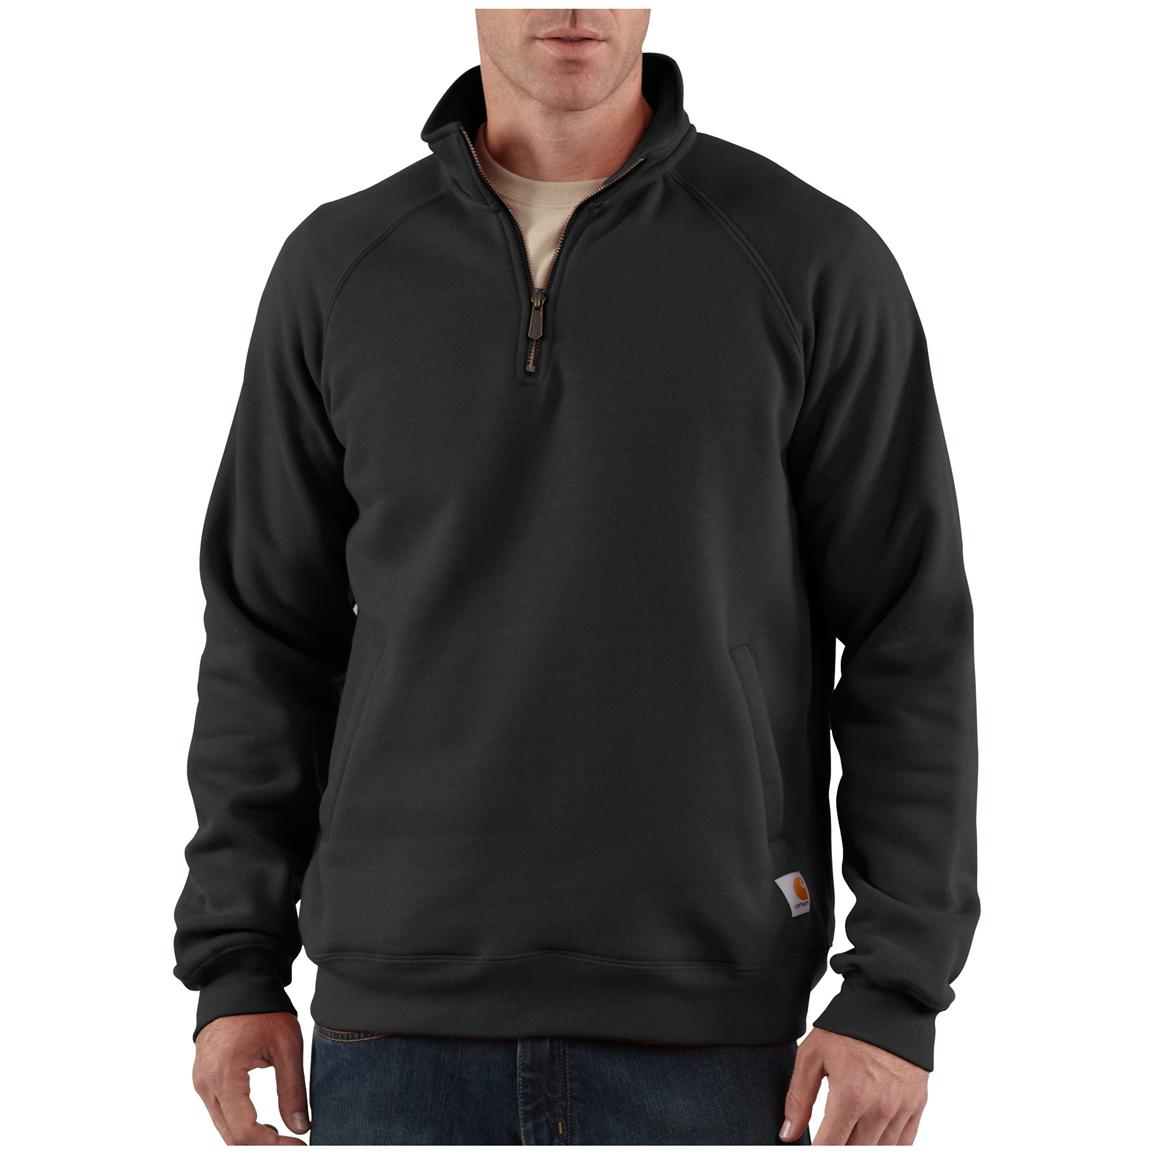 Carhartt® Midweight 1/4-zip Mock-neck Sweatshirt,, Black